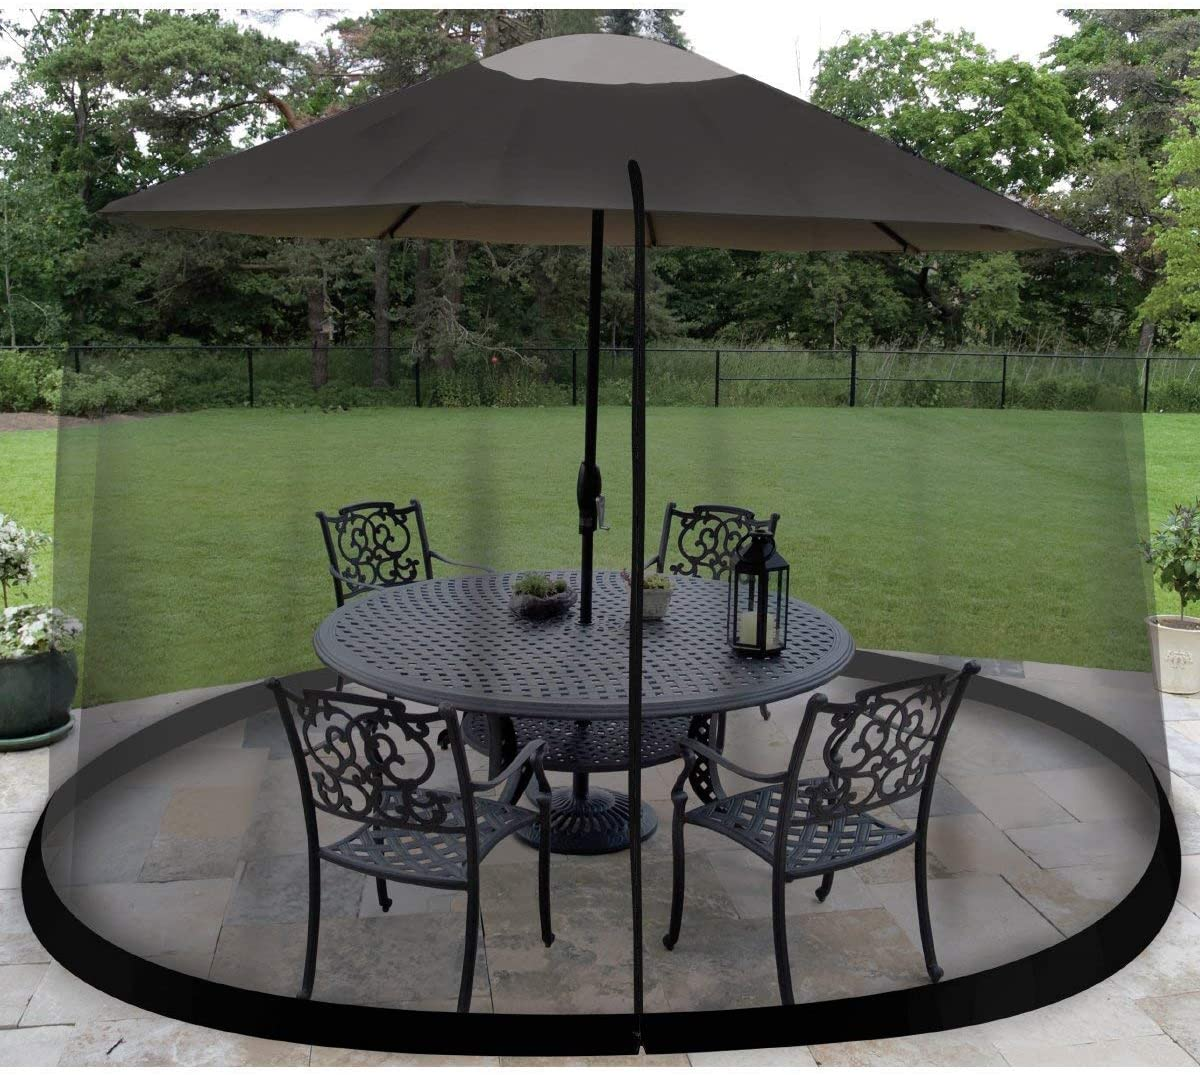 Outdoor Umbrella Table Screen Mesh Fun without Mosquitoes Bugs Enclosure 9 feet